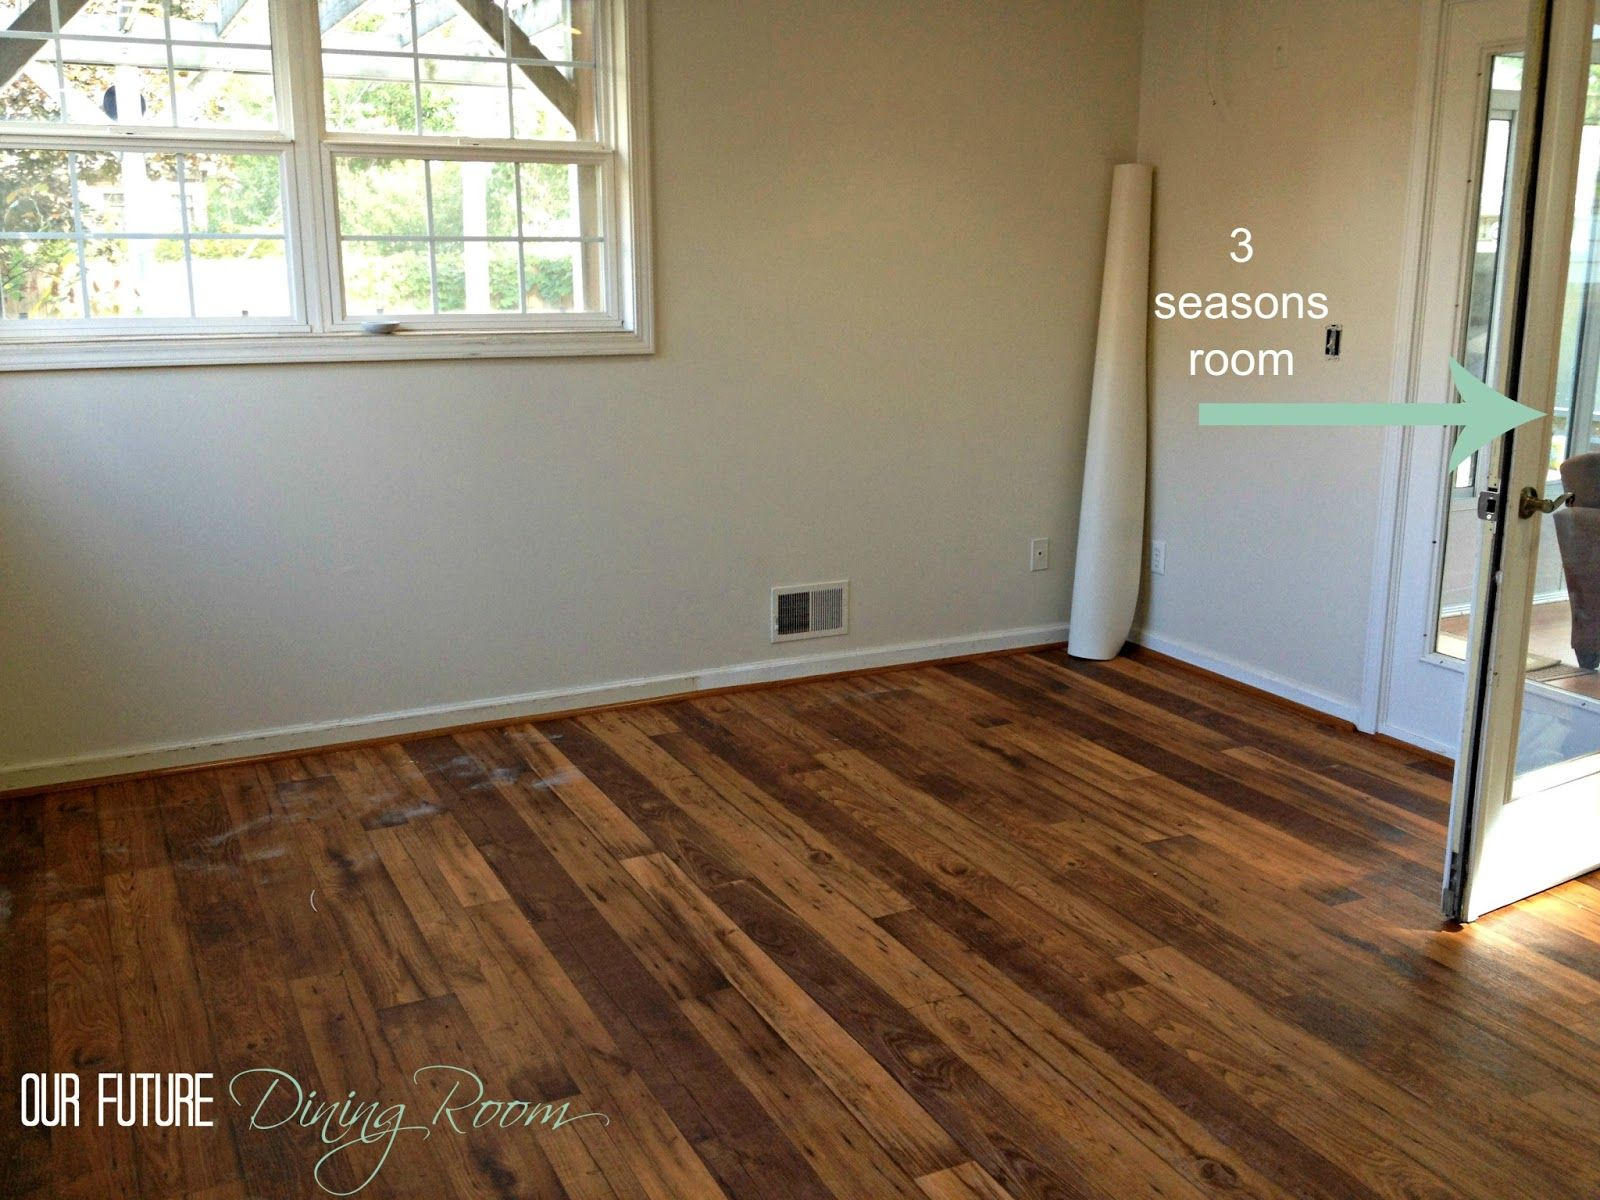 linoleum wood flooring |  faux hardwood we went with a textured